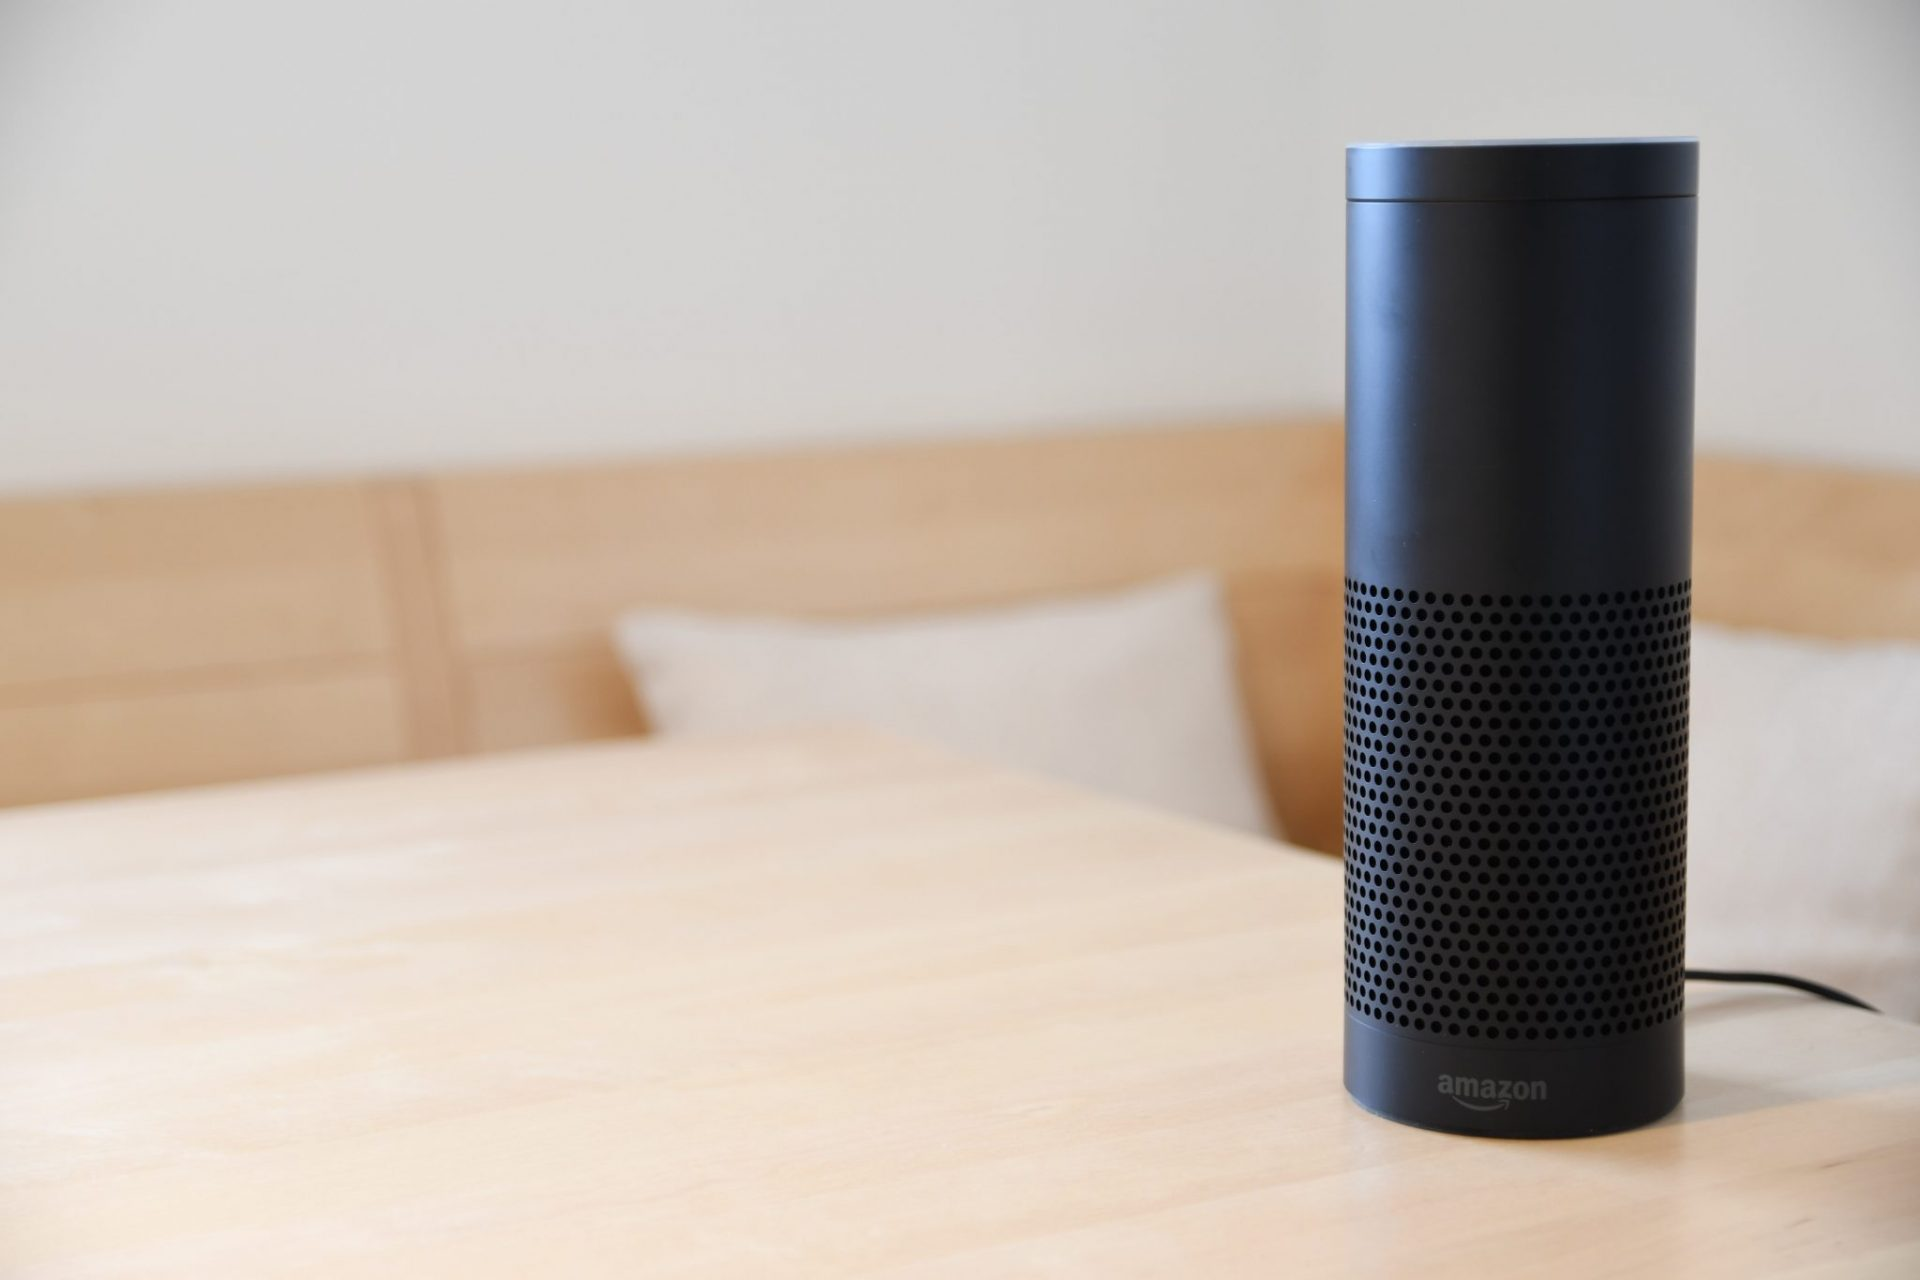 Counterpoint Smart Speaker report